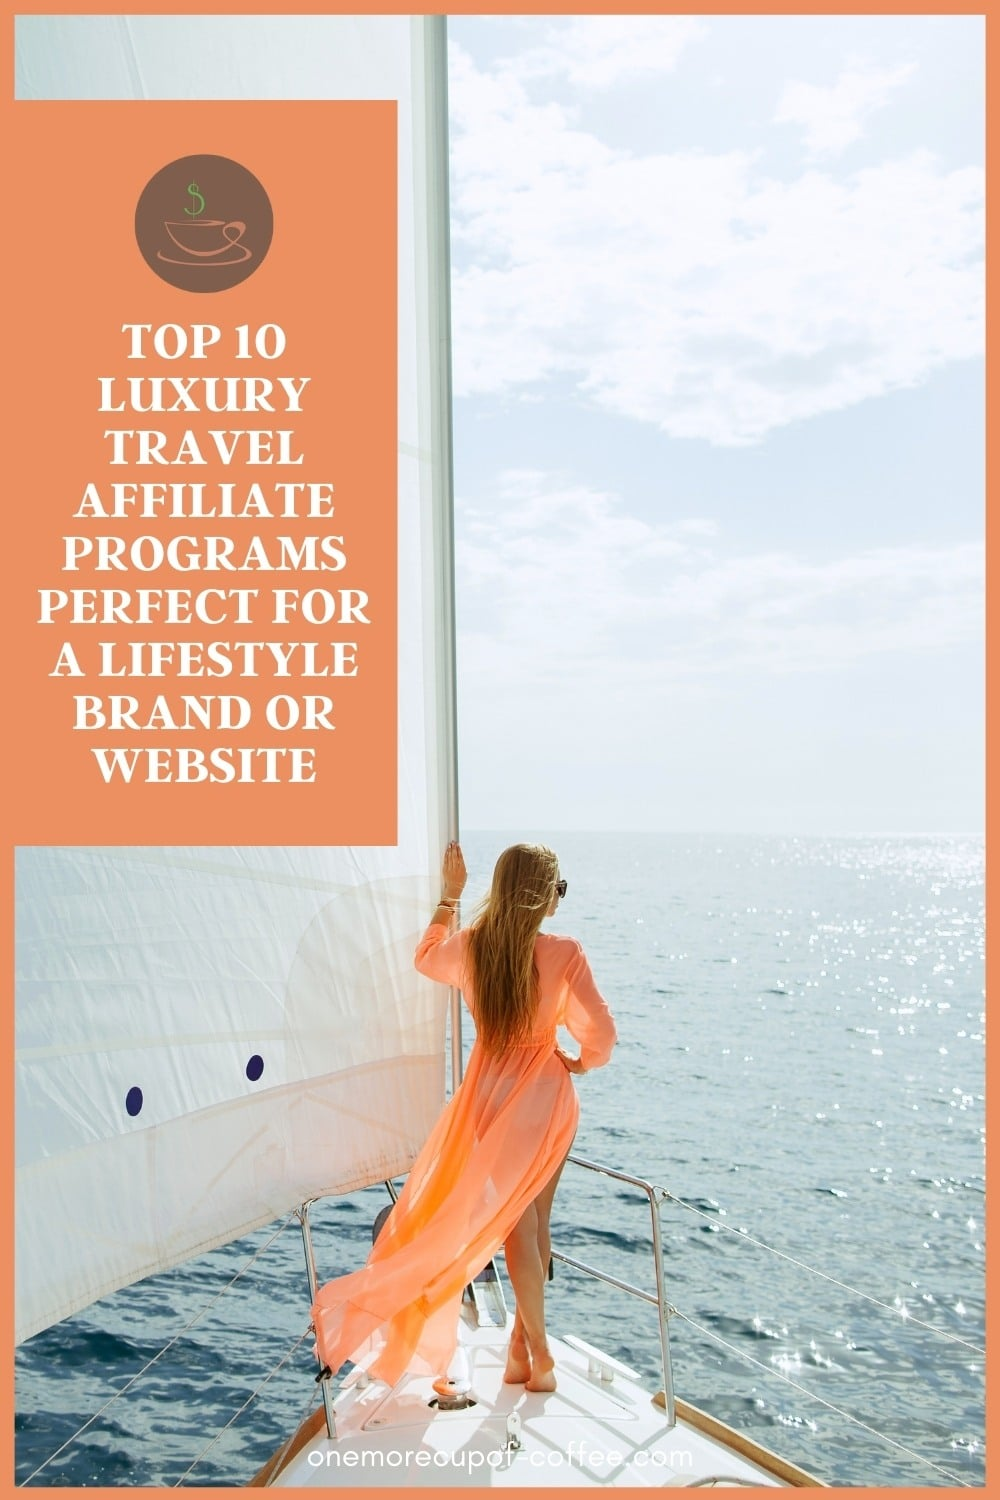 """woman in orange sundress, standing on a yacht looking out to the ocean, with text overlay """"Top 10 Luxury Travel Affiliate Programs Perfect For A Lifestyle Brand Or Website"""""""